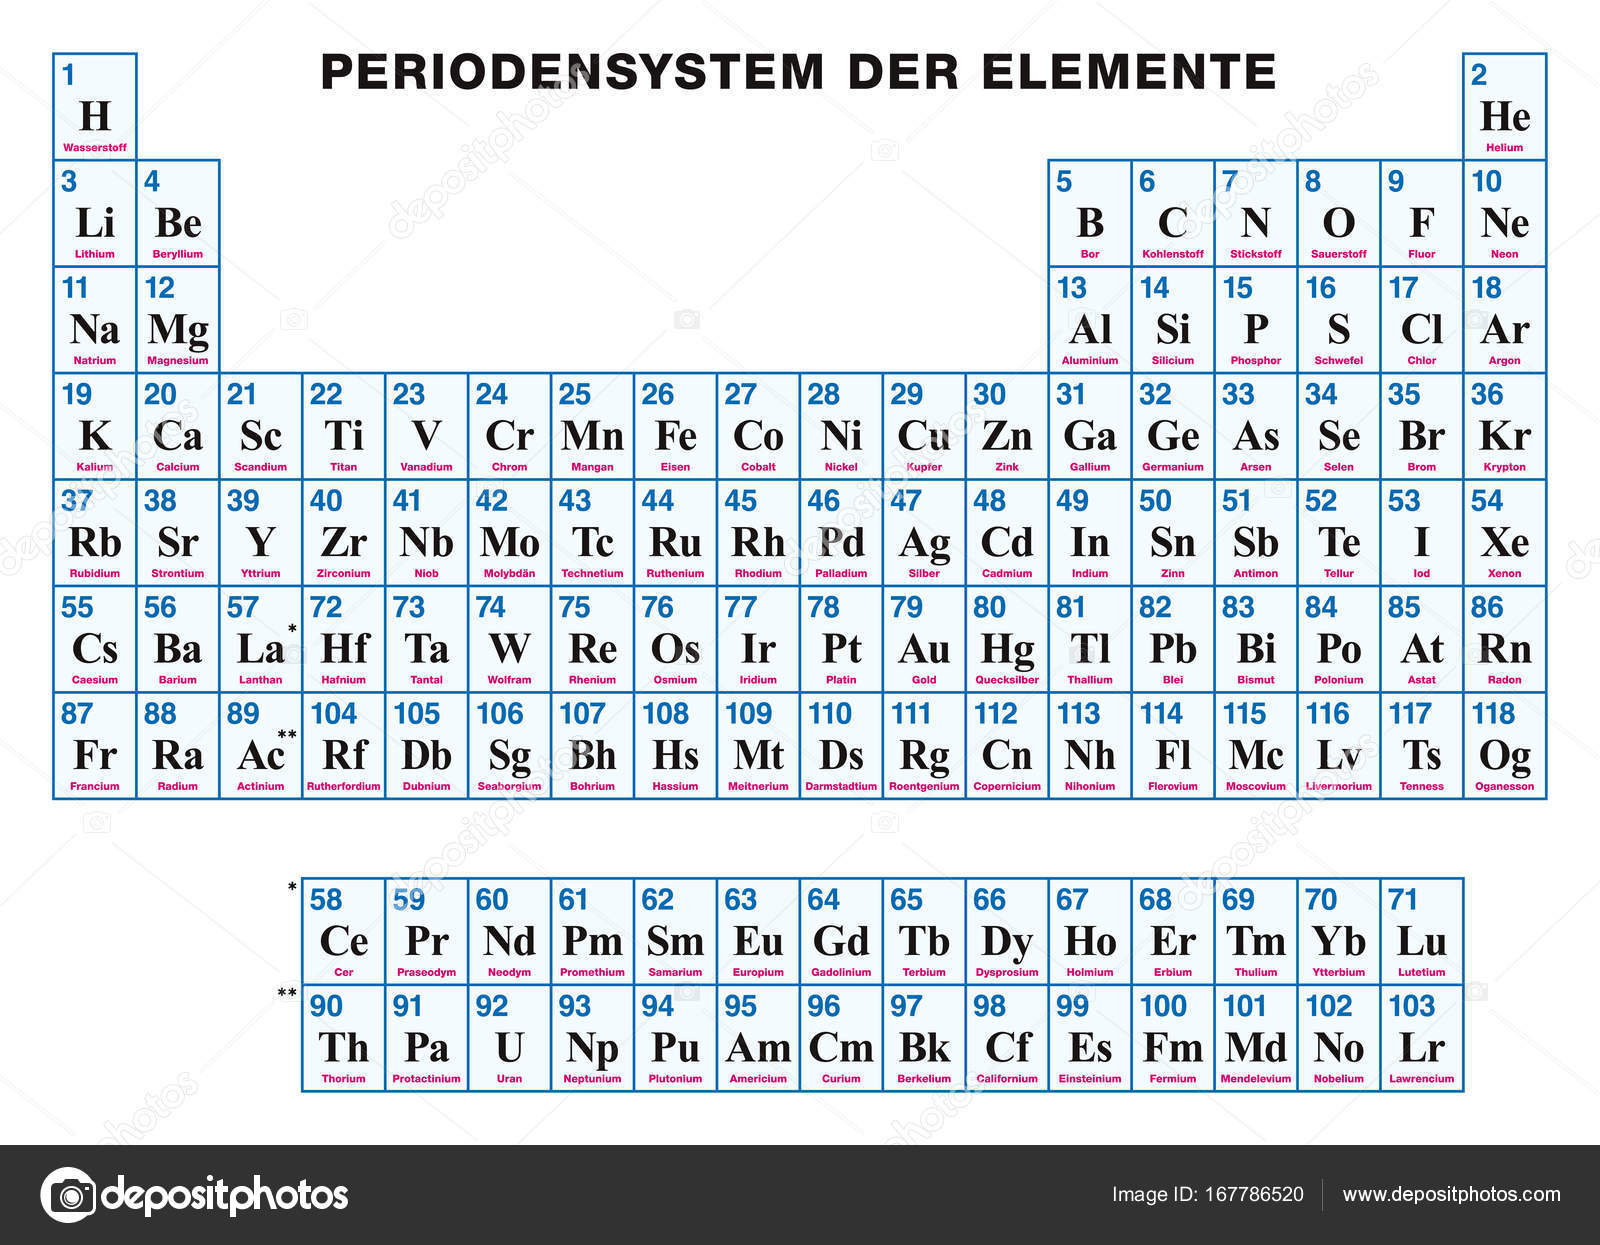 Periodic table of the elements german stock vector furian periodic table of the elements german stock vector biocorpaavc Choice Image